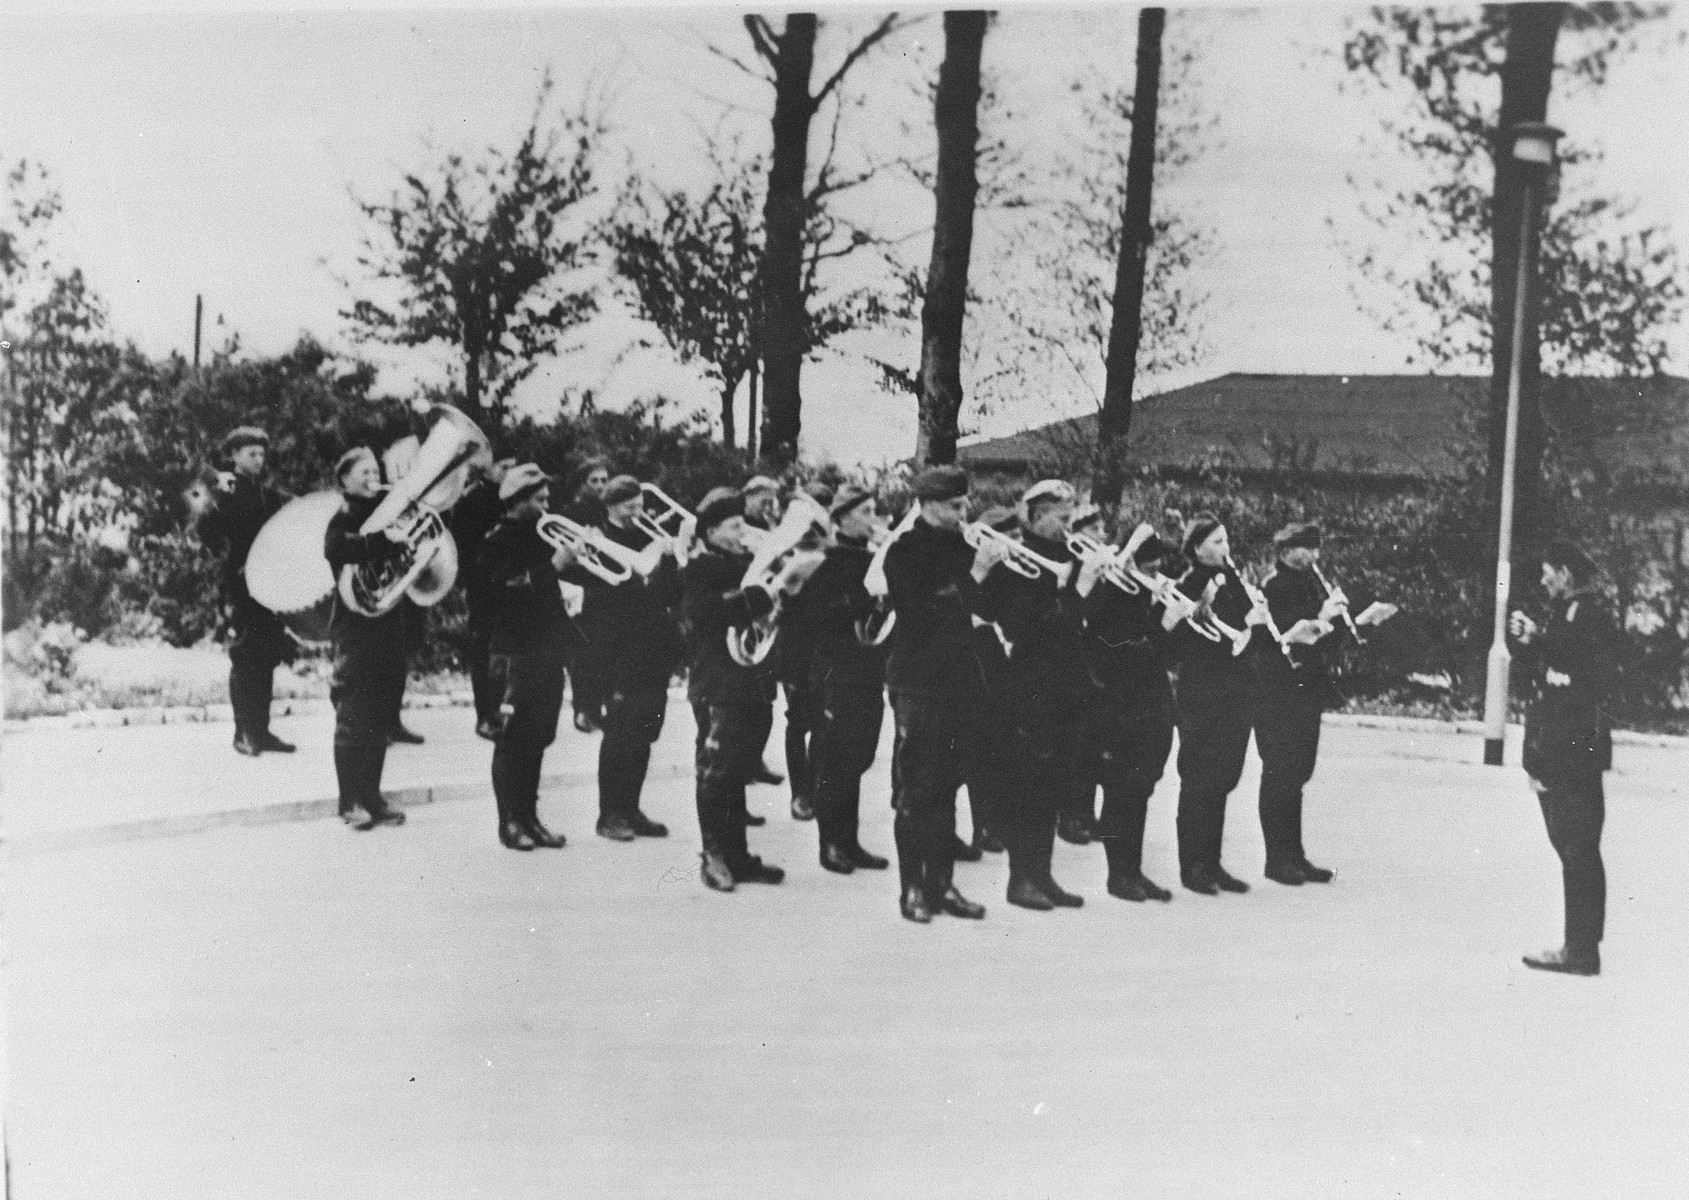 The prisoners' orchestra in Buchenwald concentration camp.